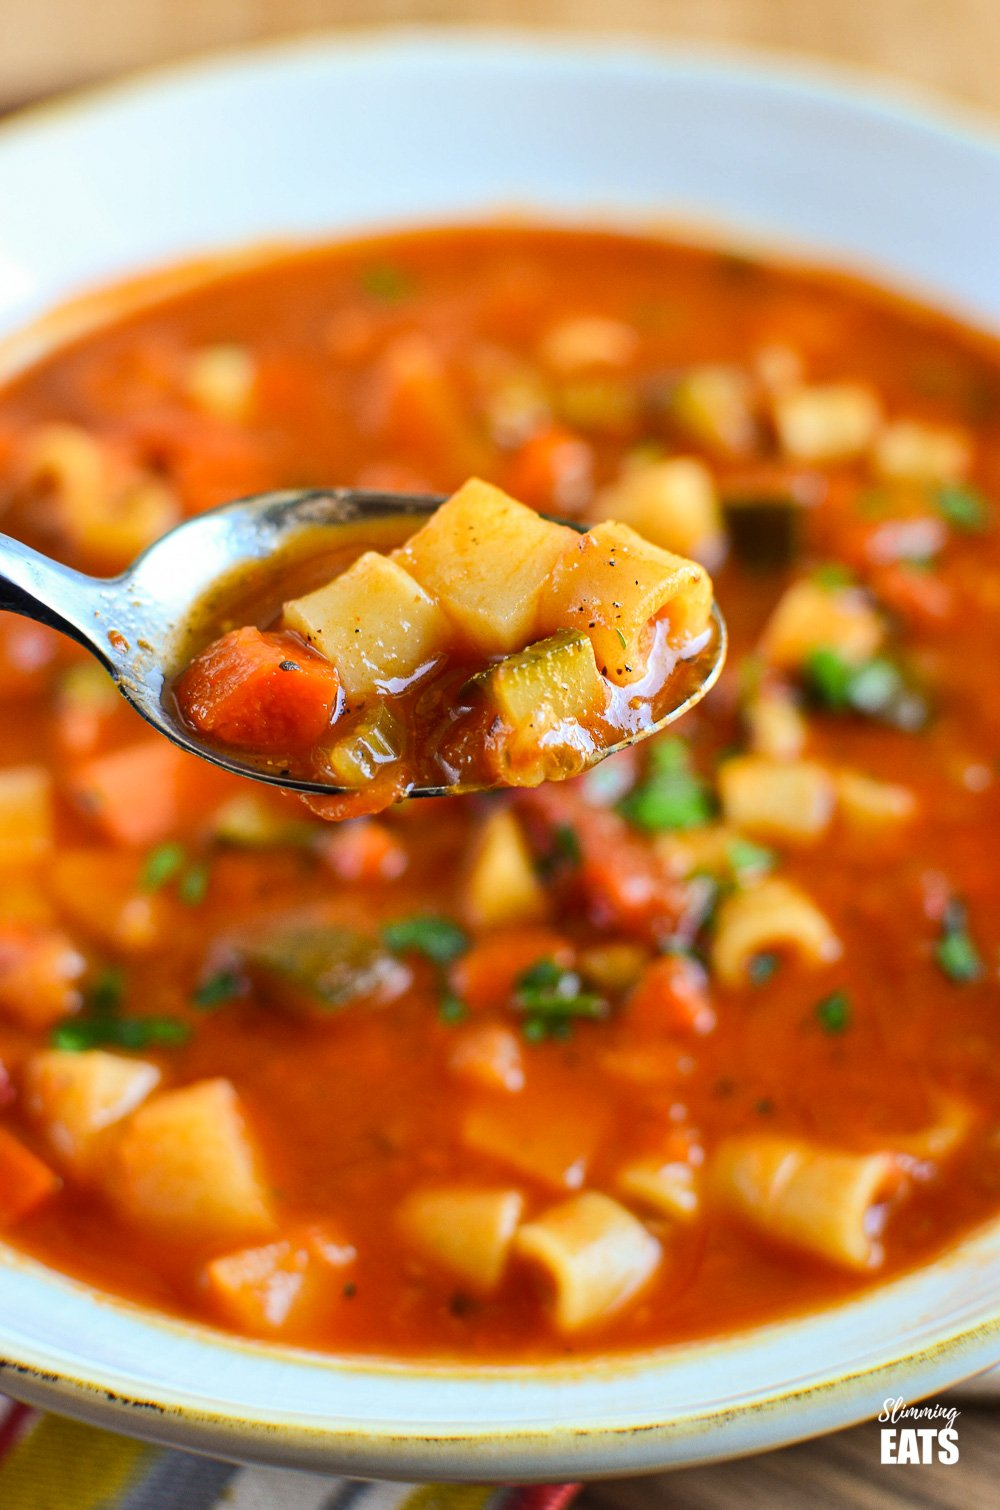 spoonful of minestrone soup from bowl